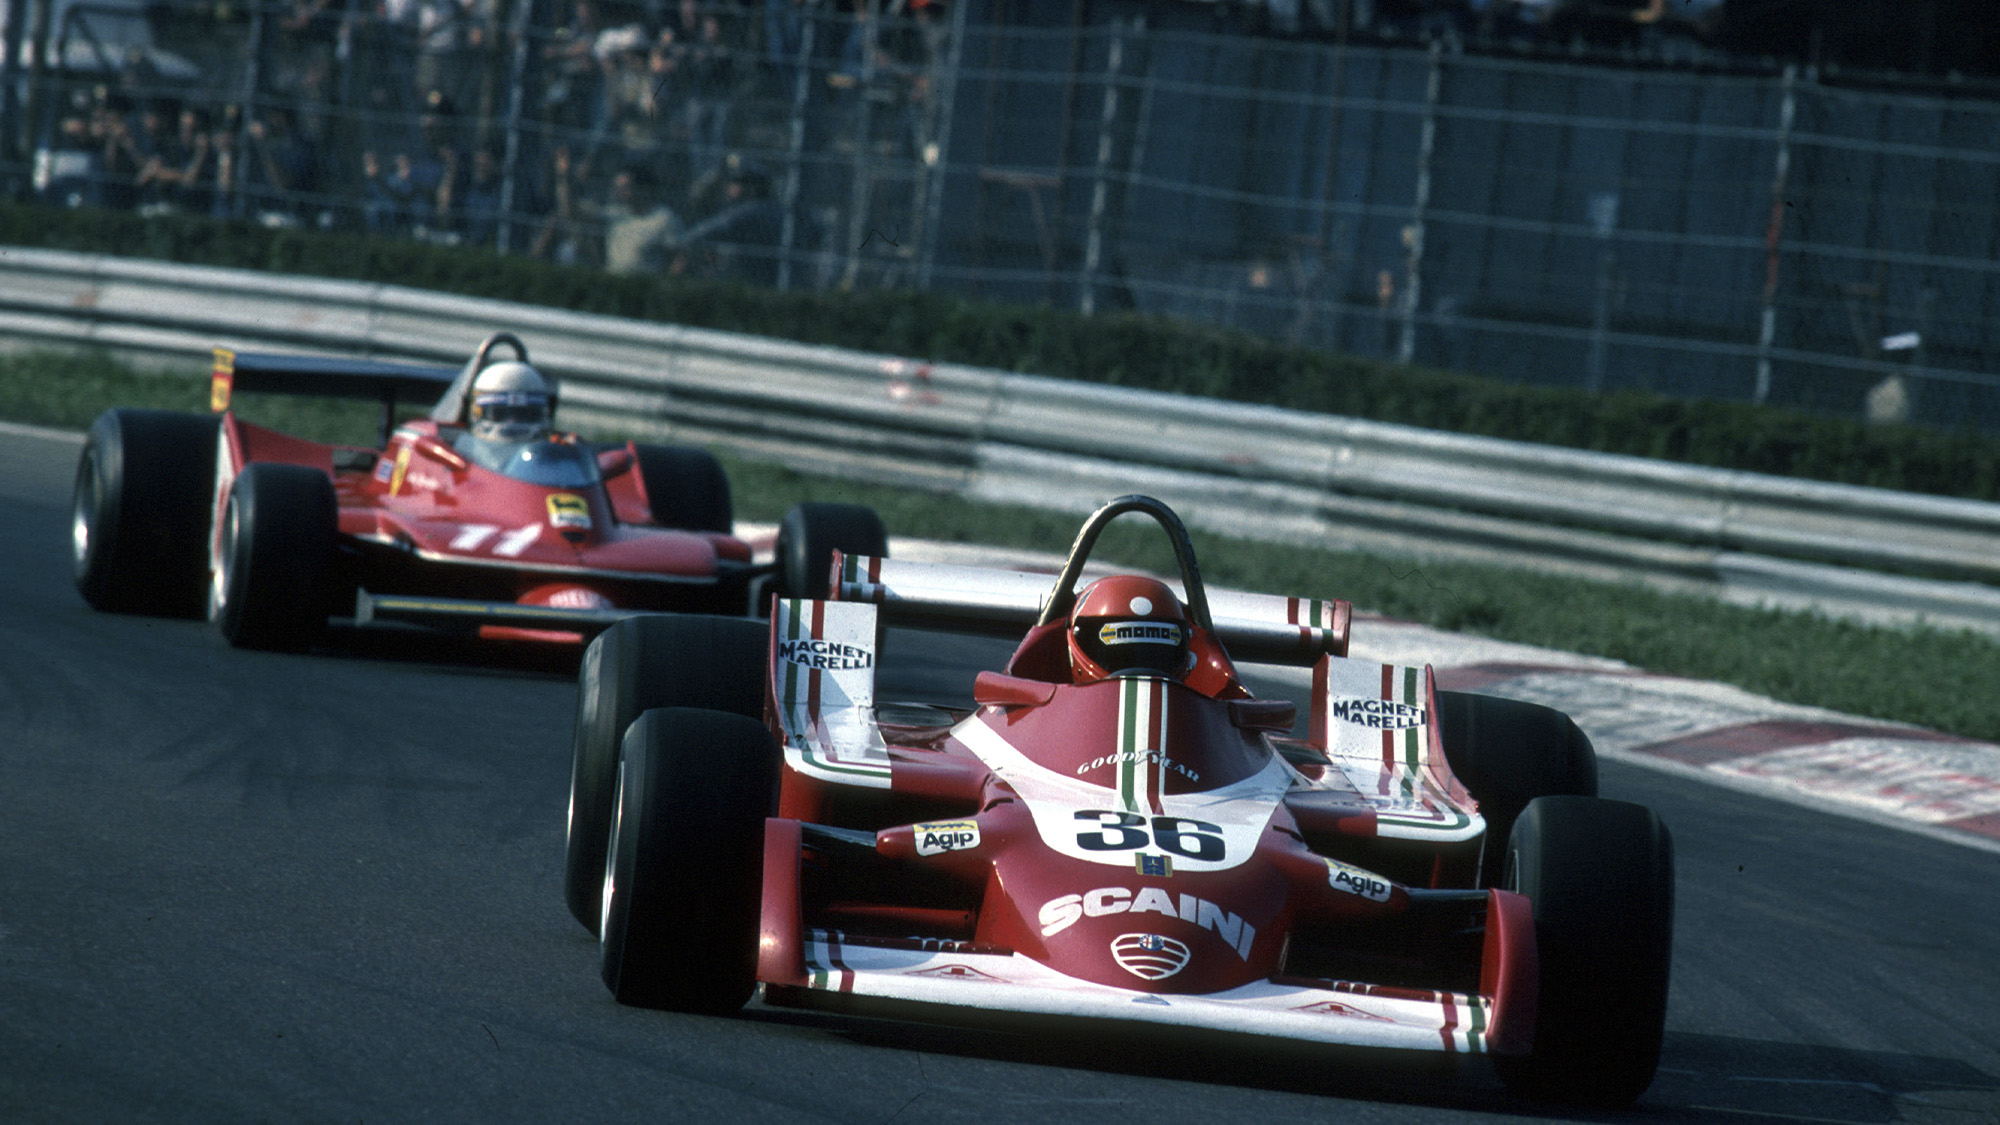 Vittorio Brambilla's Alfa Romeo leads the ferrari of Jody Scheckter during the 1979 Italian Grand Prix at Monza